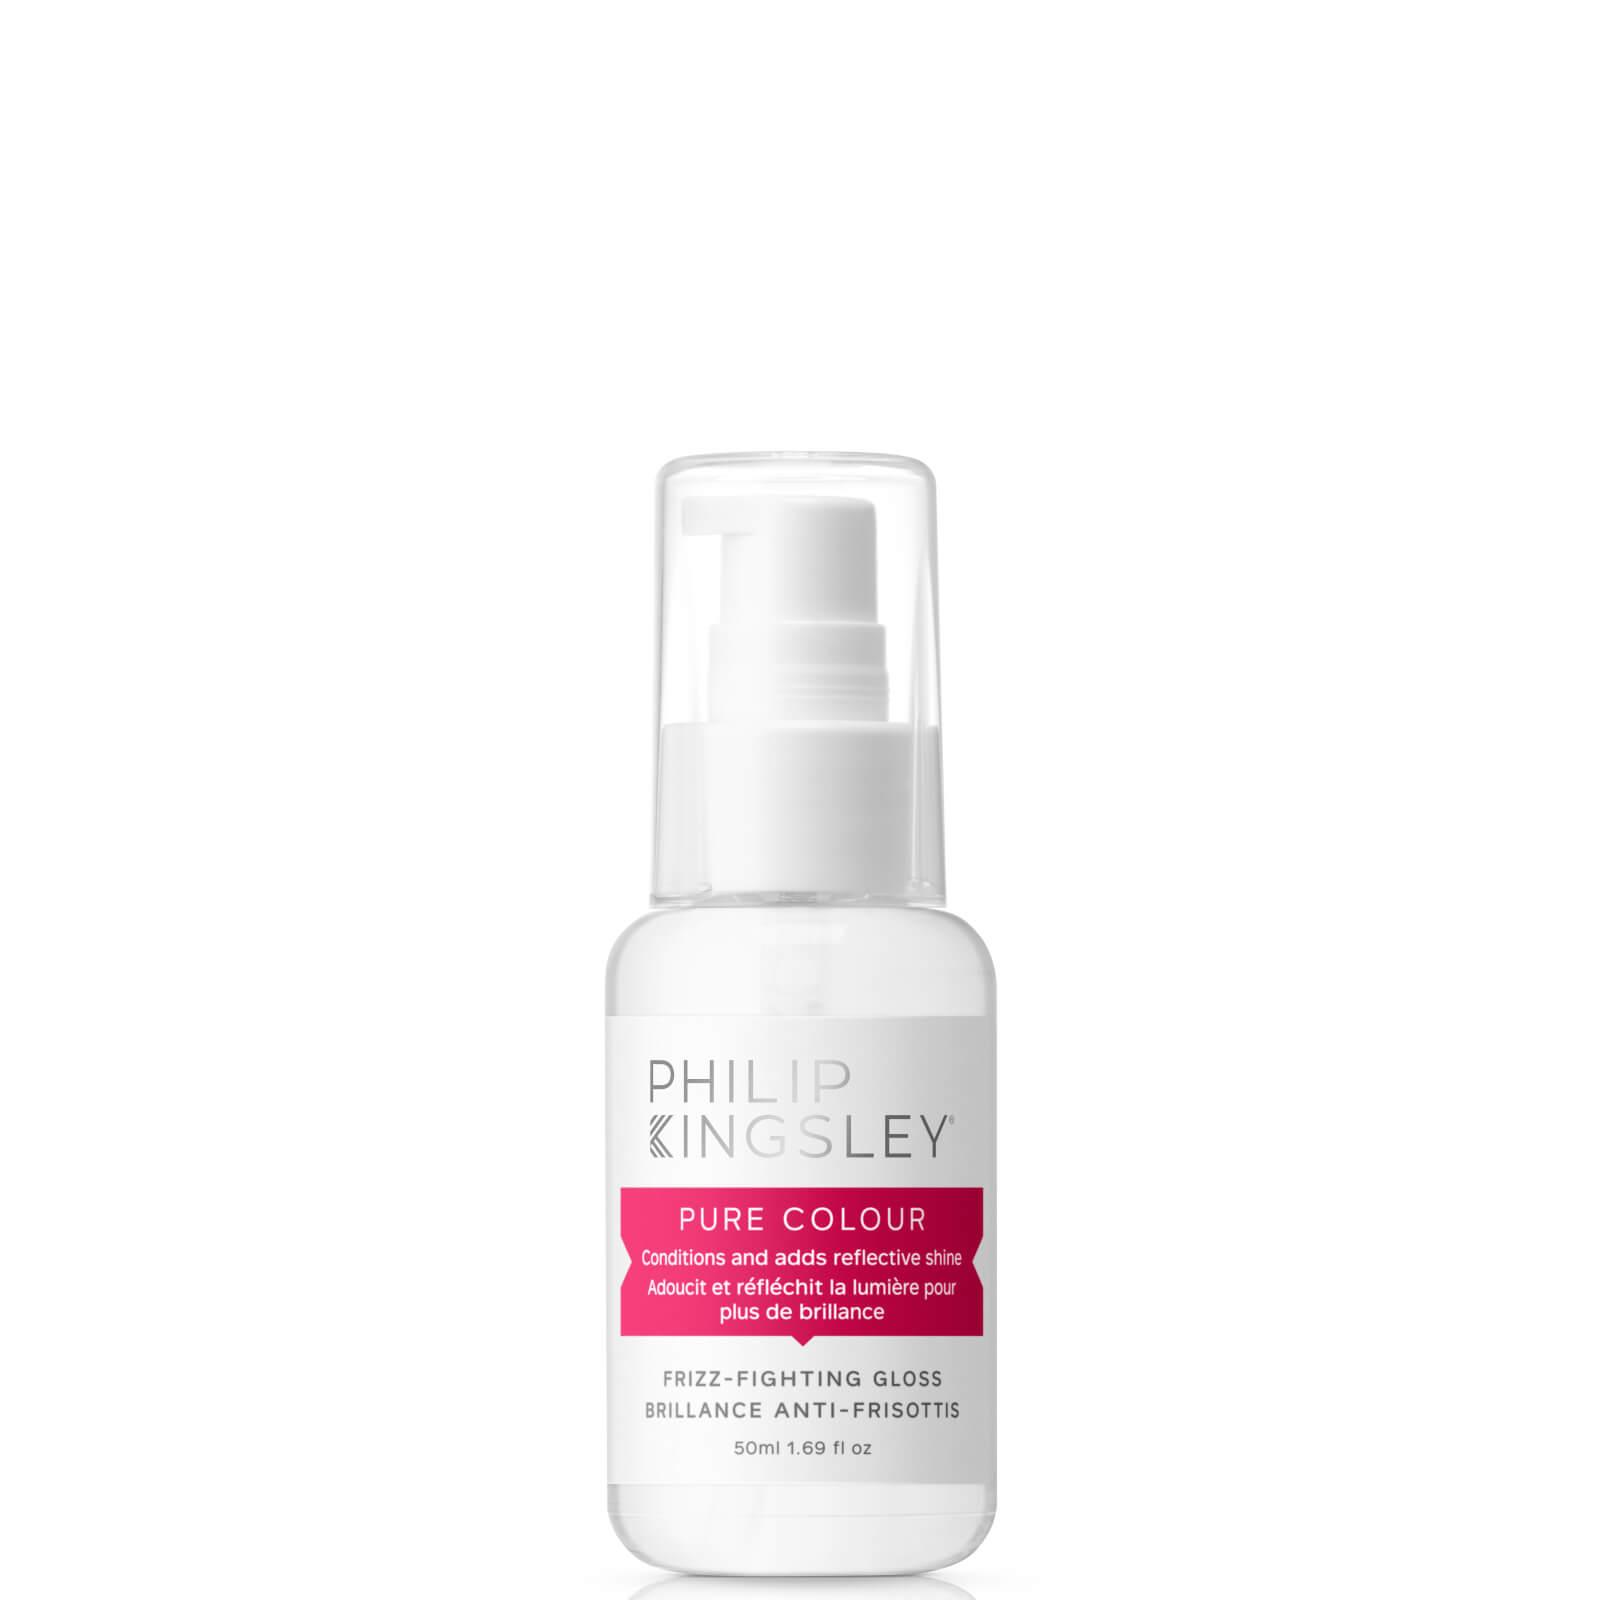 5. Philip Kingsley Pure Colour Frizz Fighting Gloss : Philip Kingsley